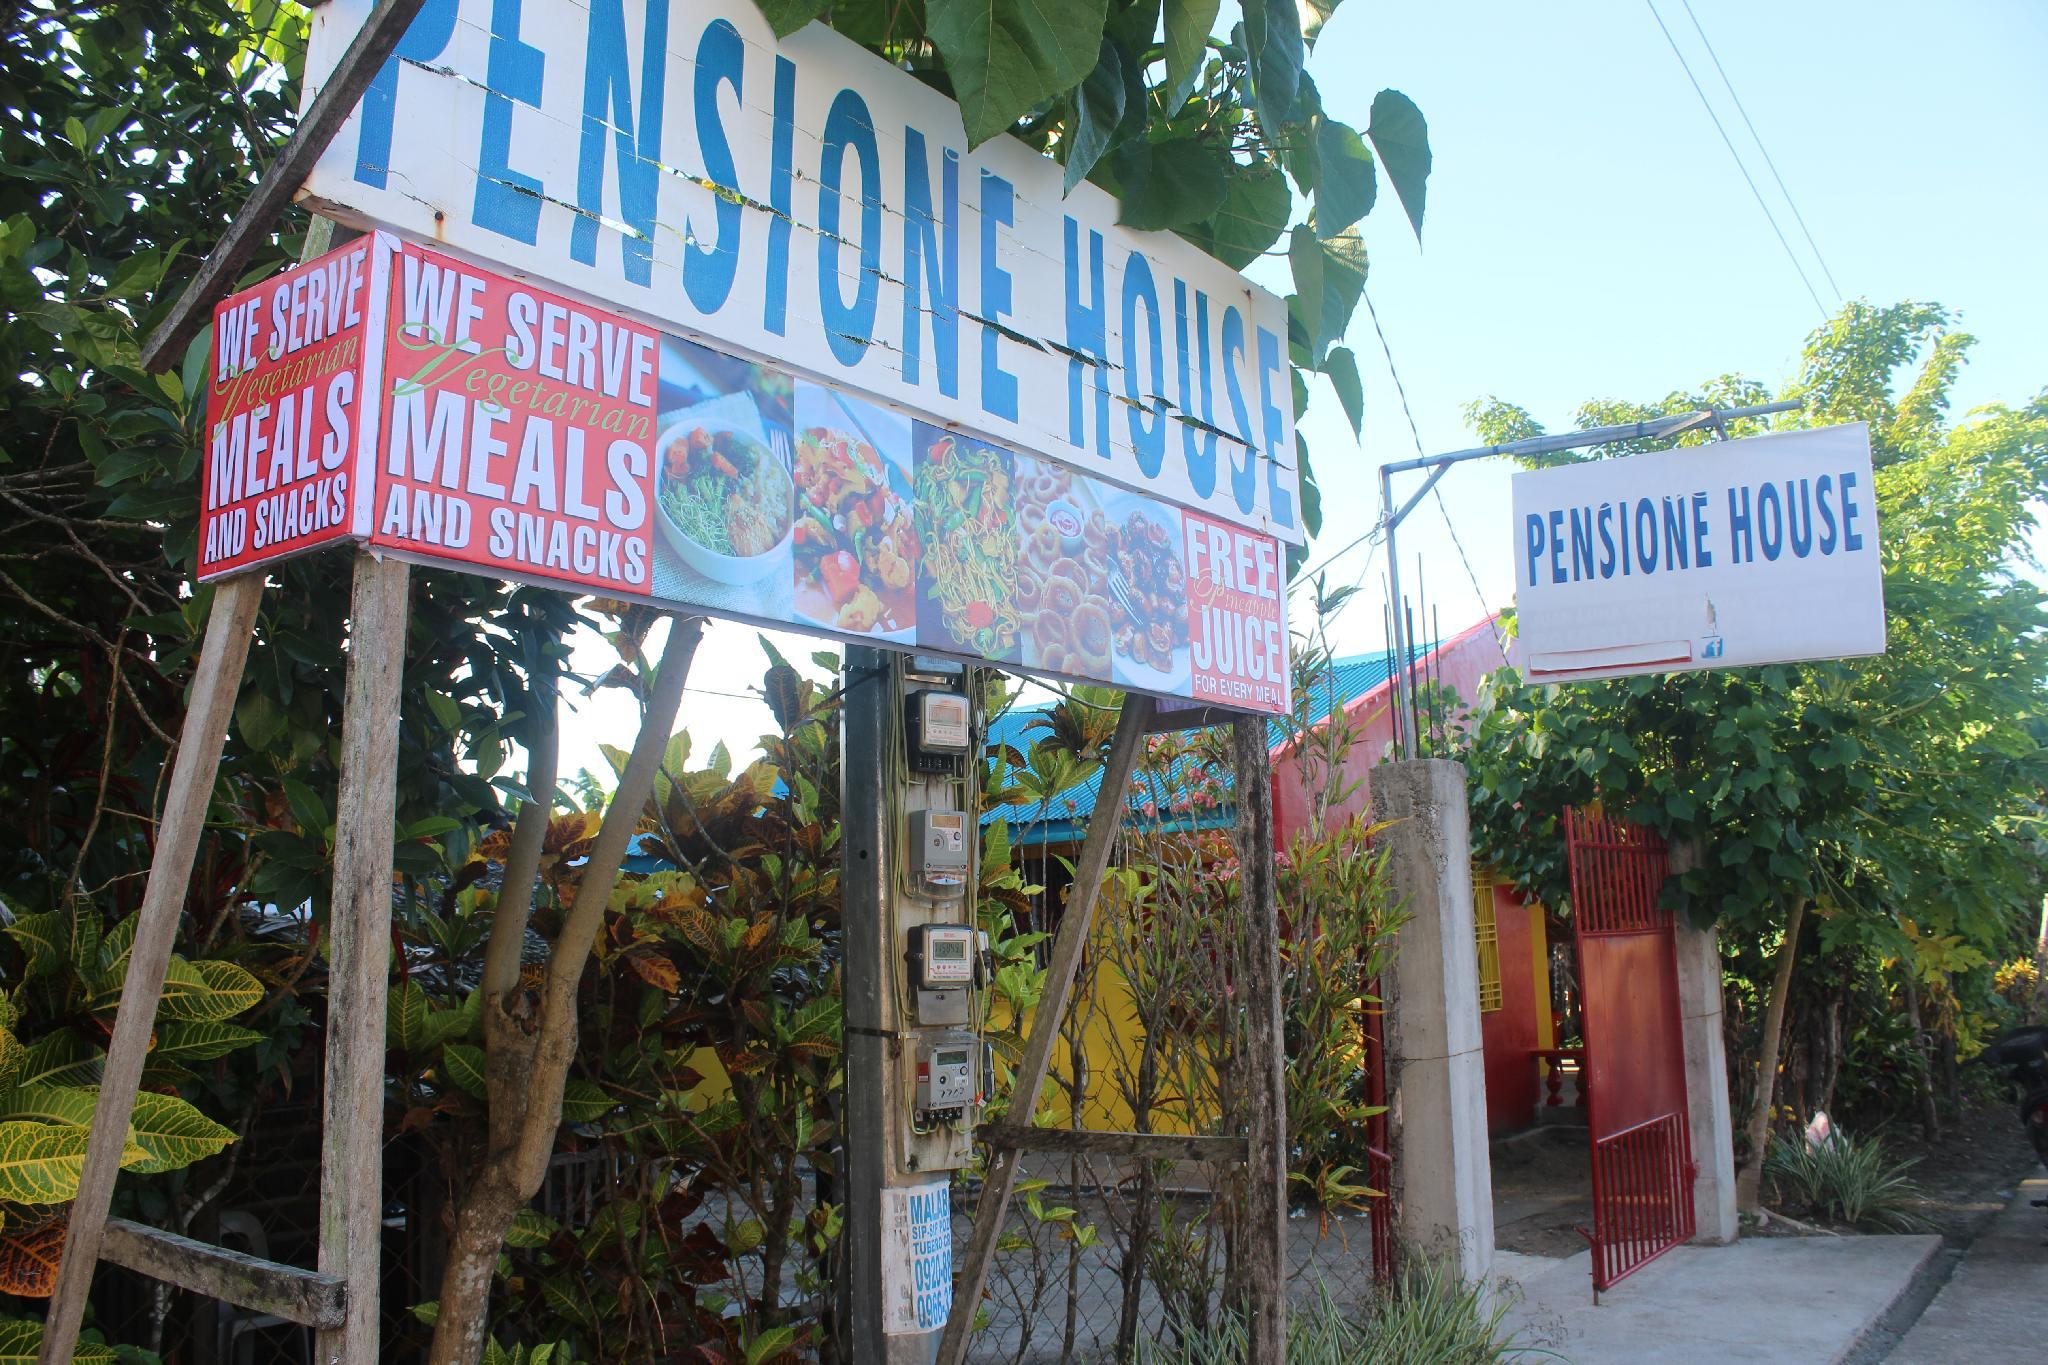 Fred And Flor Pension House + Gallery Cafe